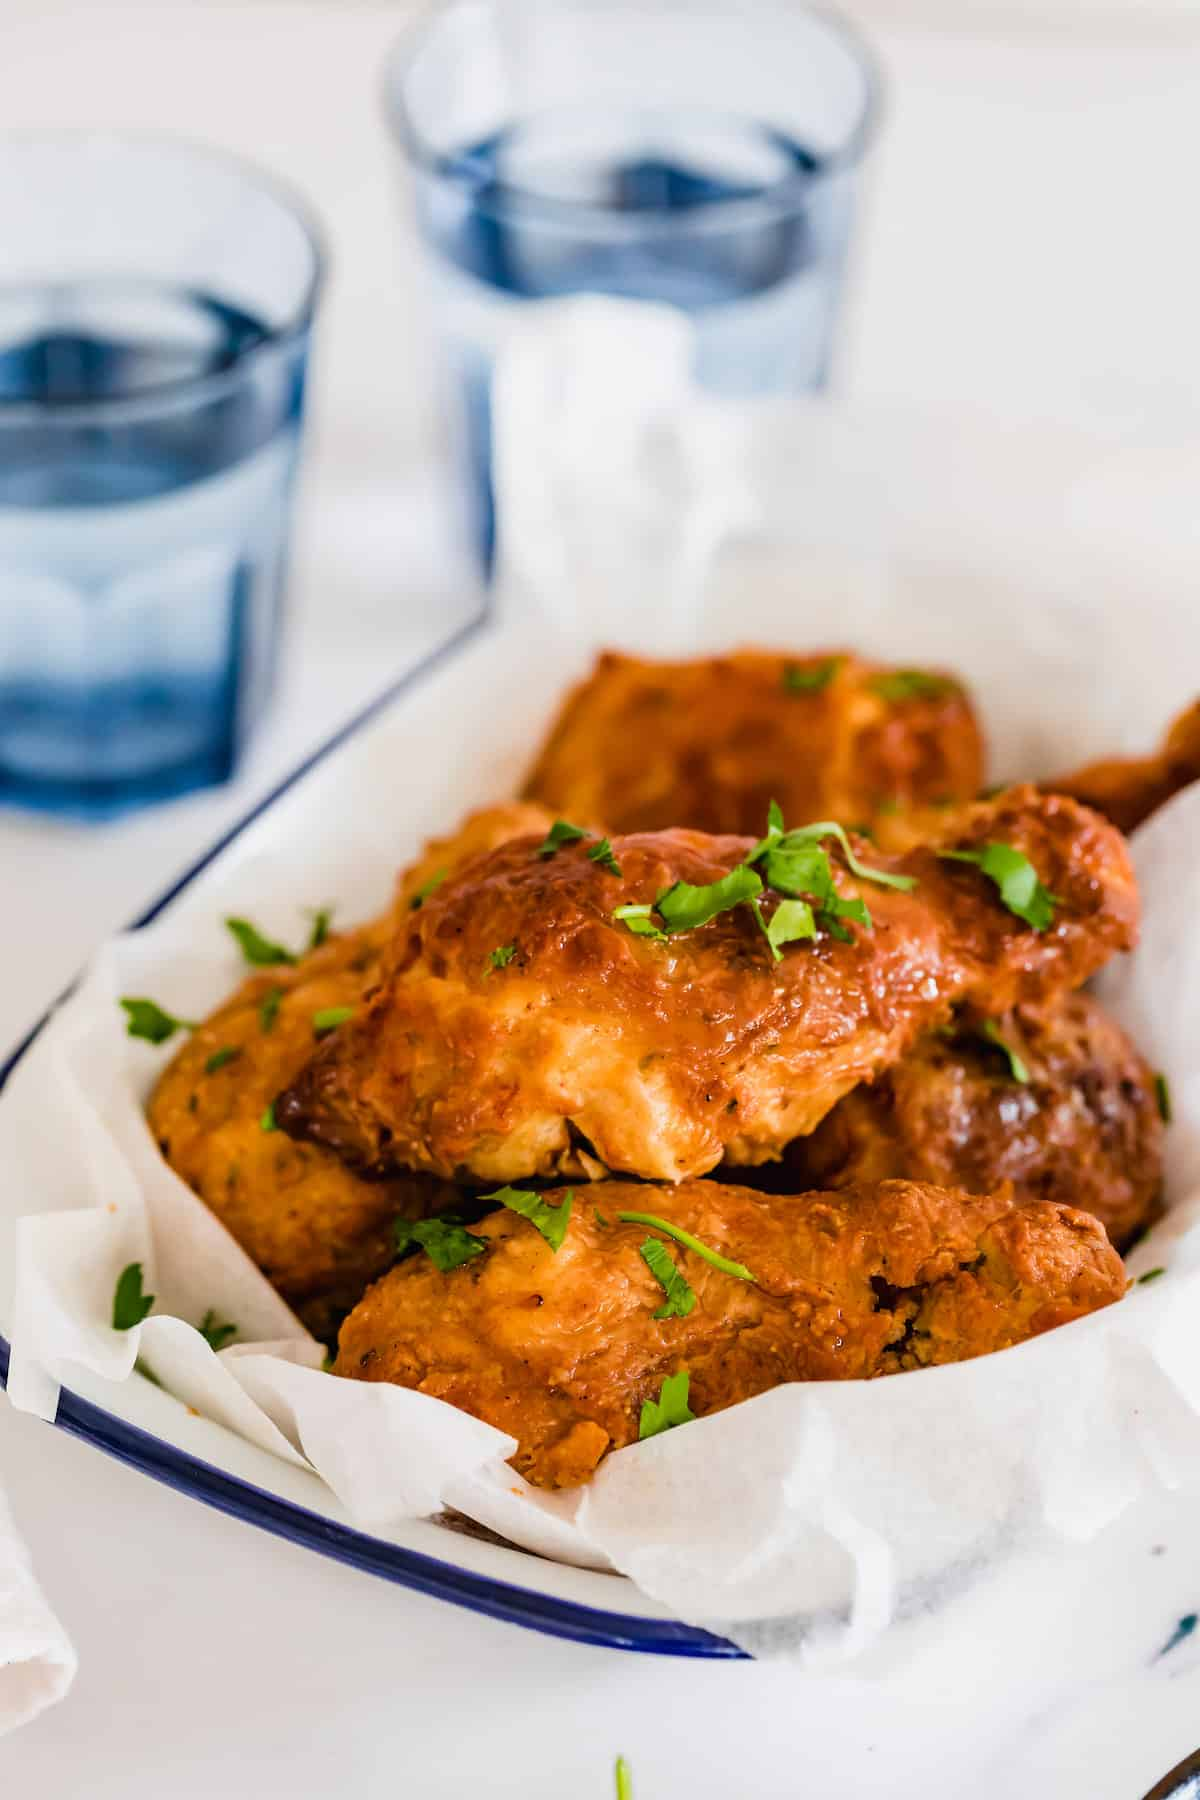 A Parchment-Lined Bowl of Air Fryer Fried Chicken in Front of Two Glasses of Water